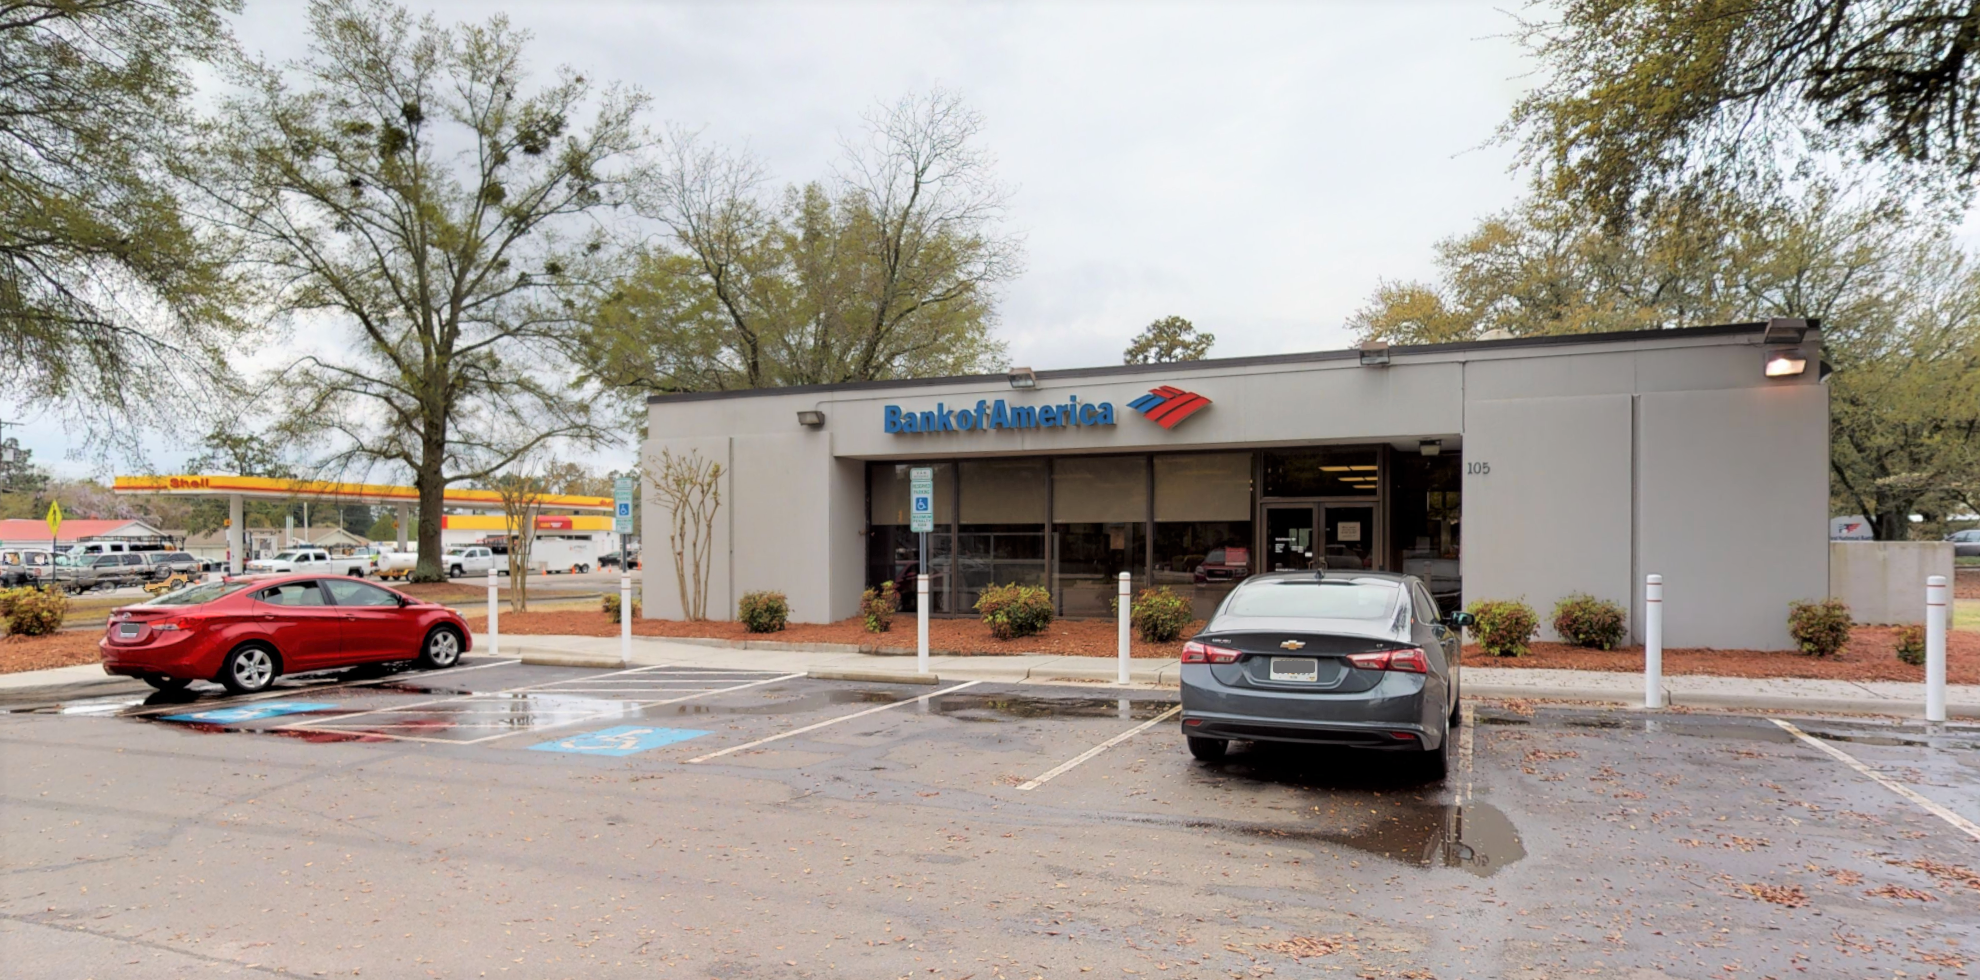 Bank of America financial center with drive-thru ATM and teller   105 W Morganton Rd, Southern Pines, NC 28387